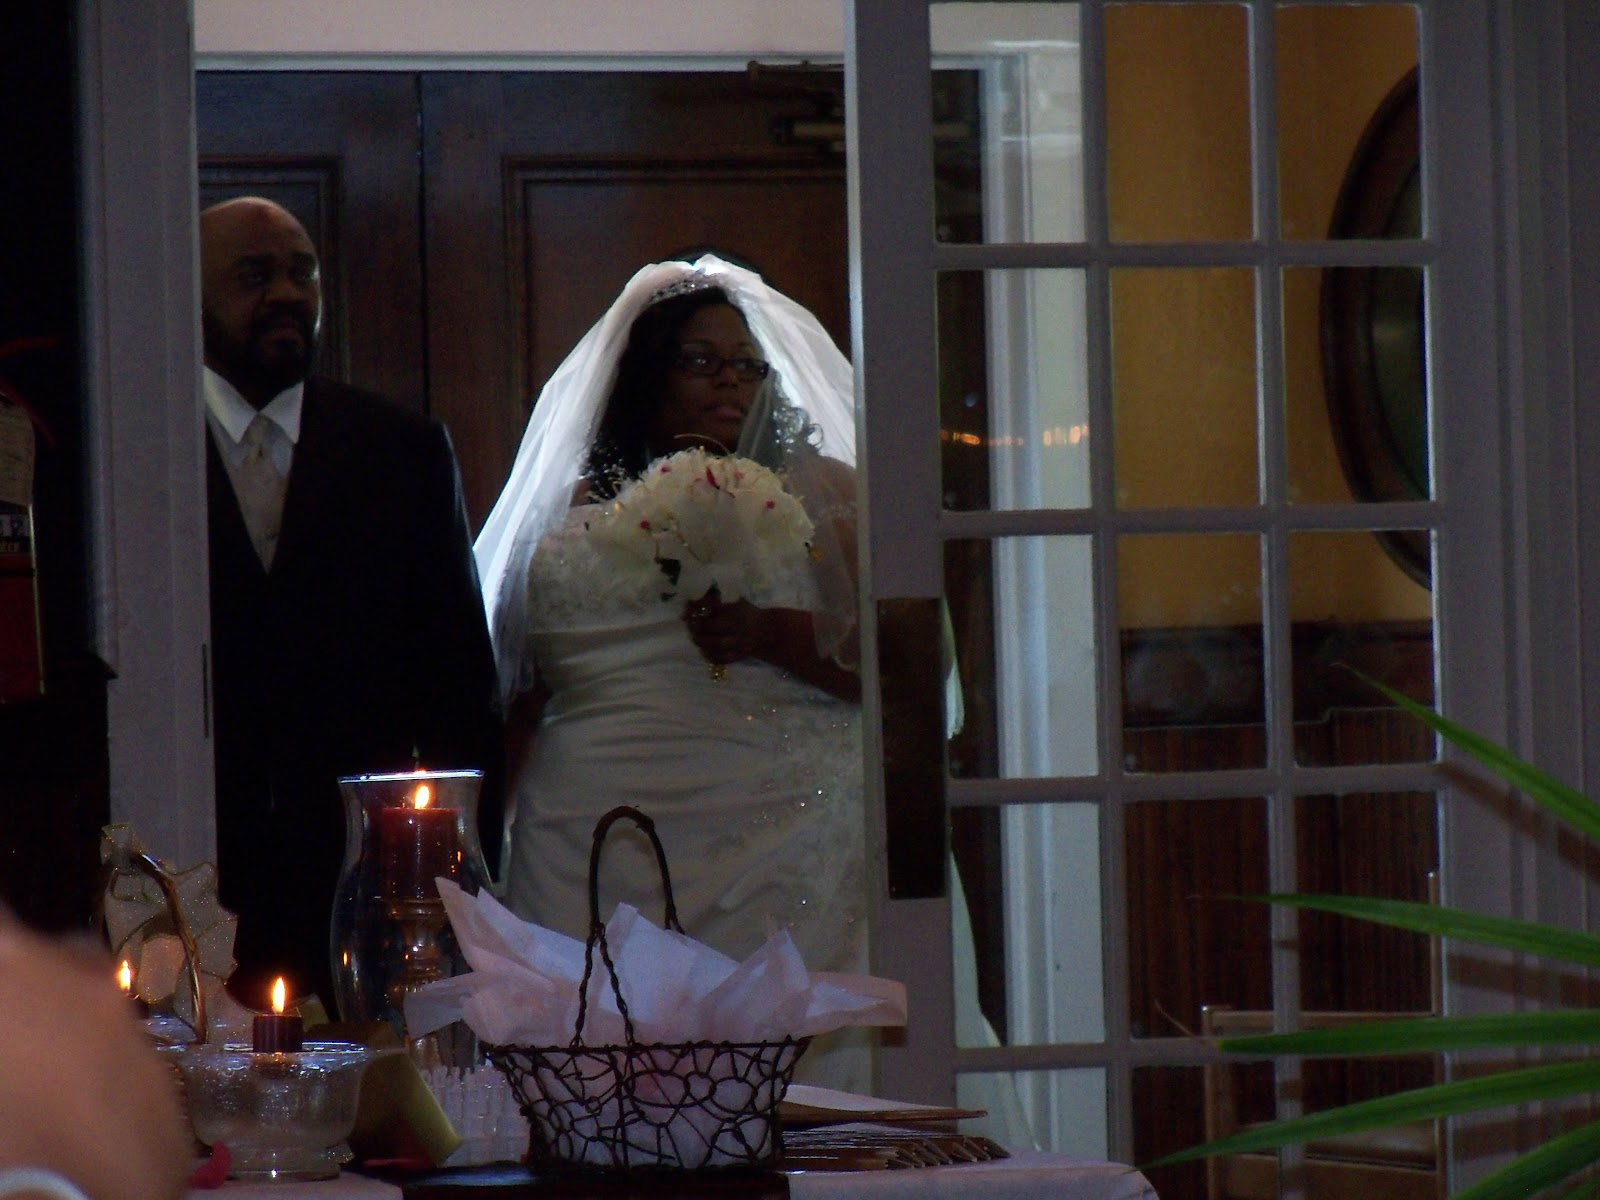 MeChaia Lunn and Clyde Longs wedding - 101_4560.JPG